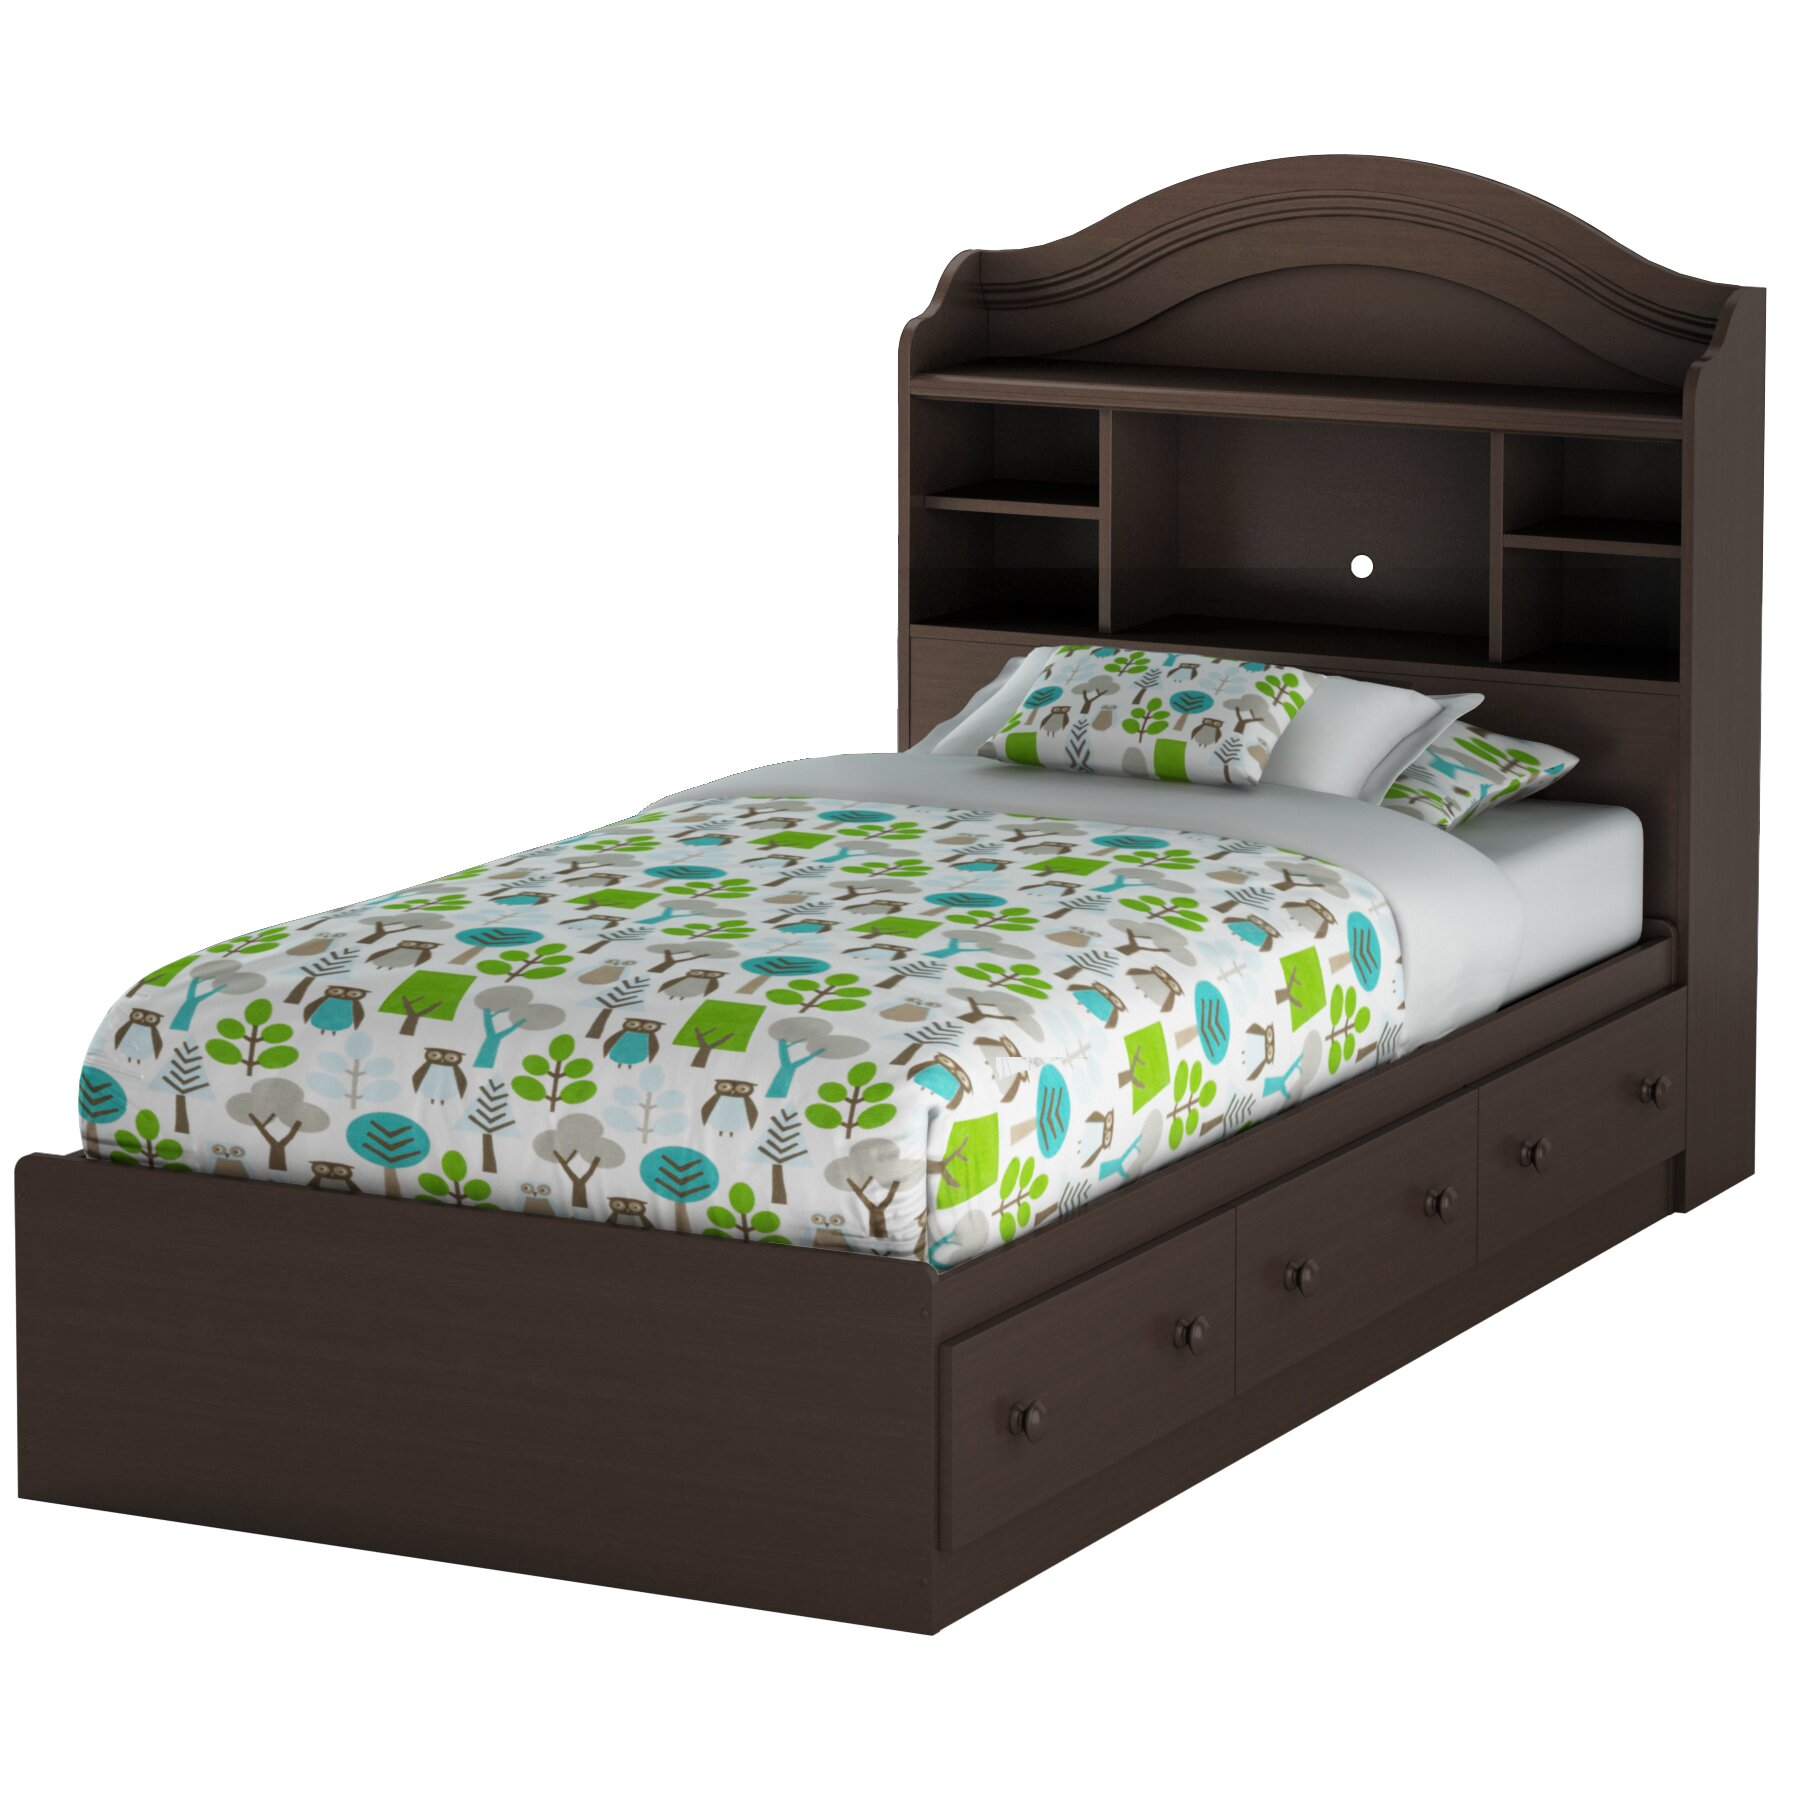 South shore summer breeze twin mate 39 s bed with storage for Twin bed with storage